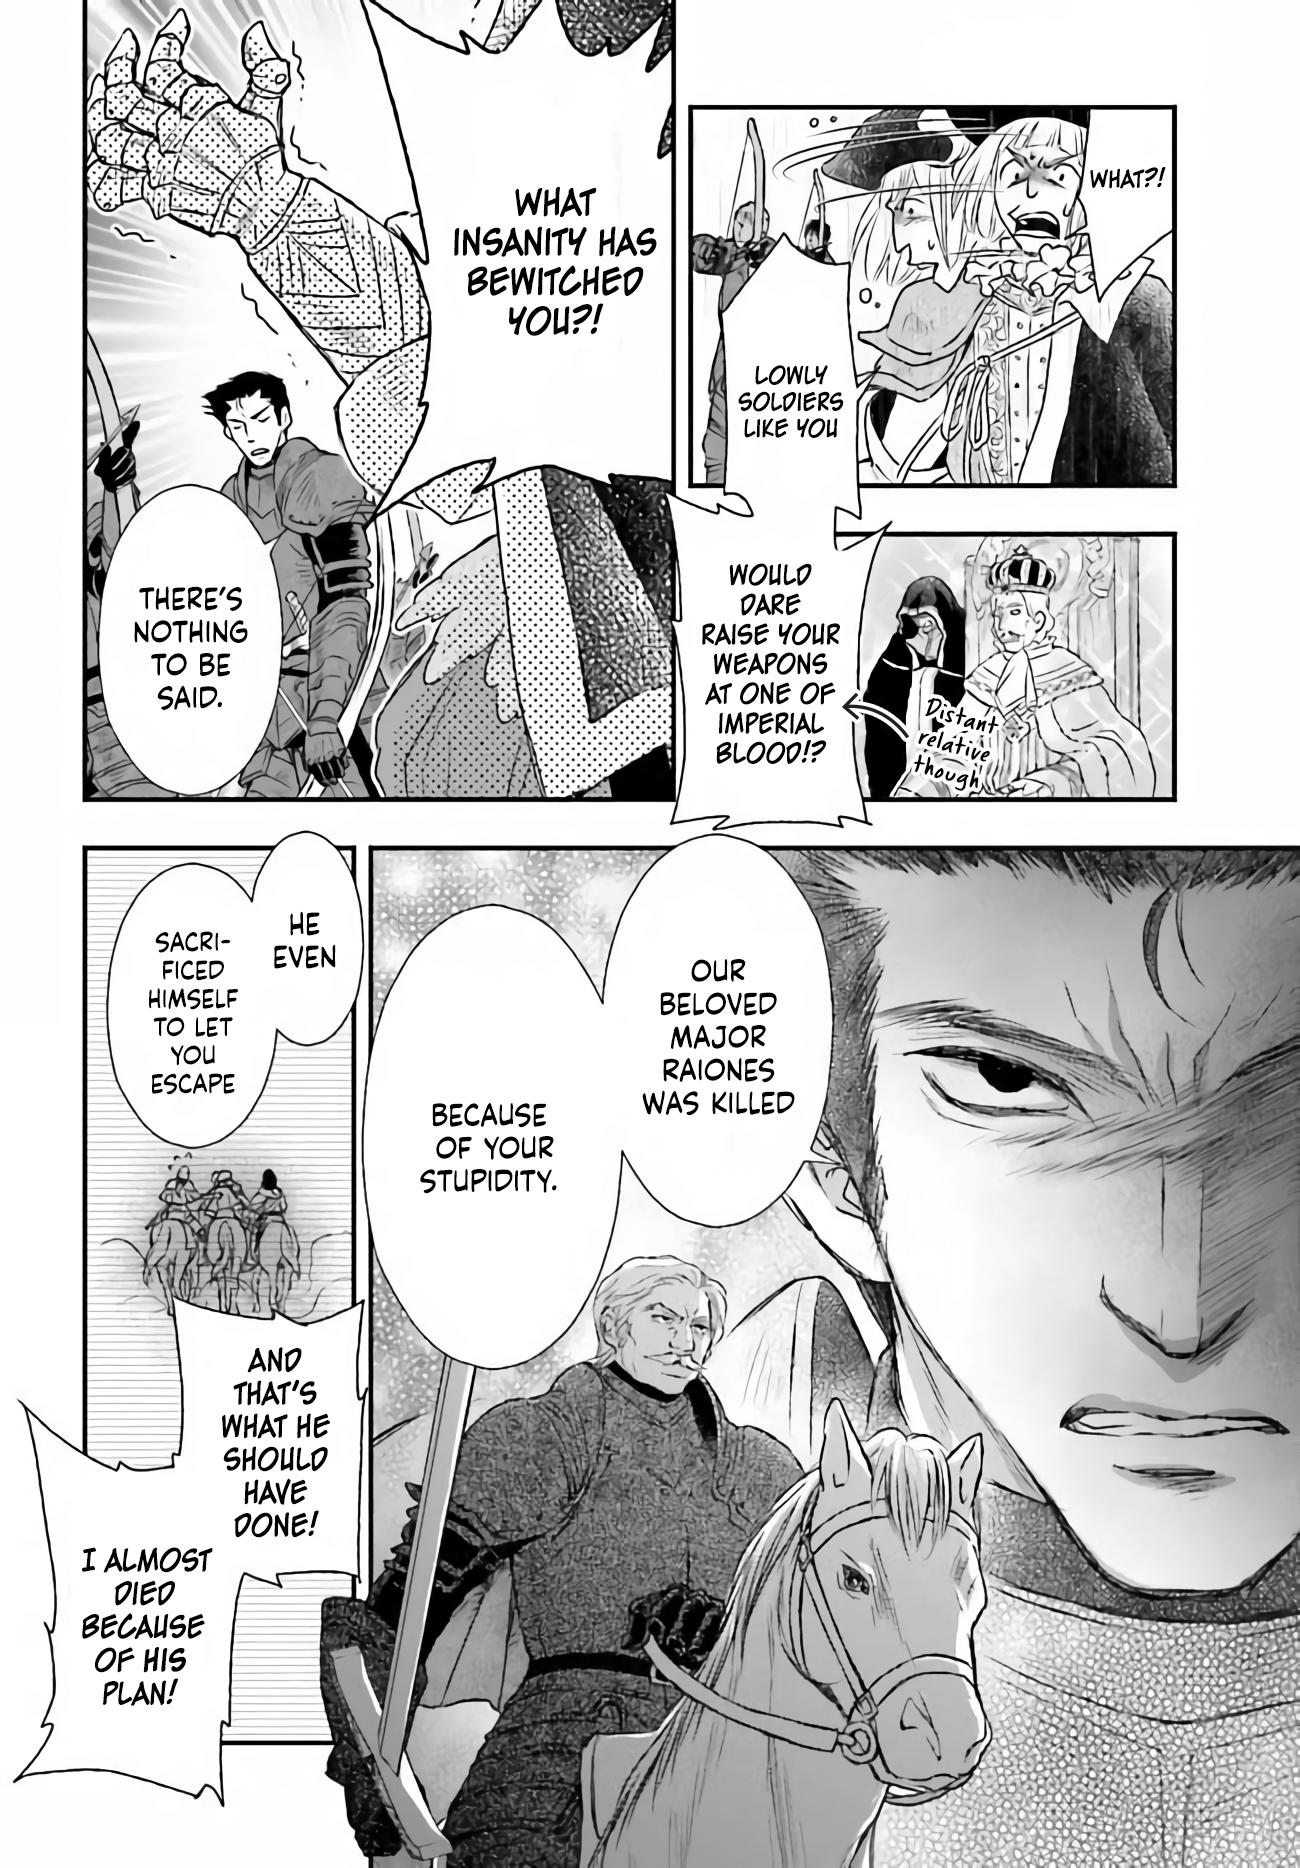 The Little Girl Raised By Death Hold The Sword Of Death Tight Chapter 11 page 11 - Mangakakalots.com